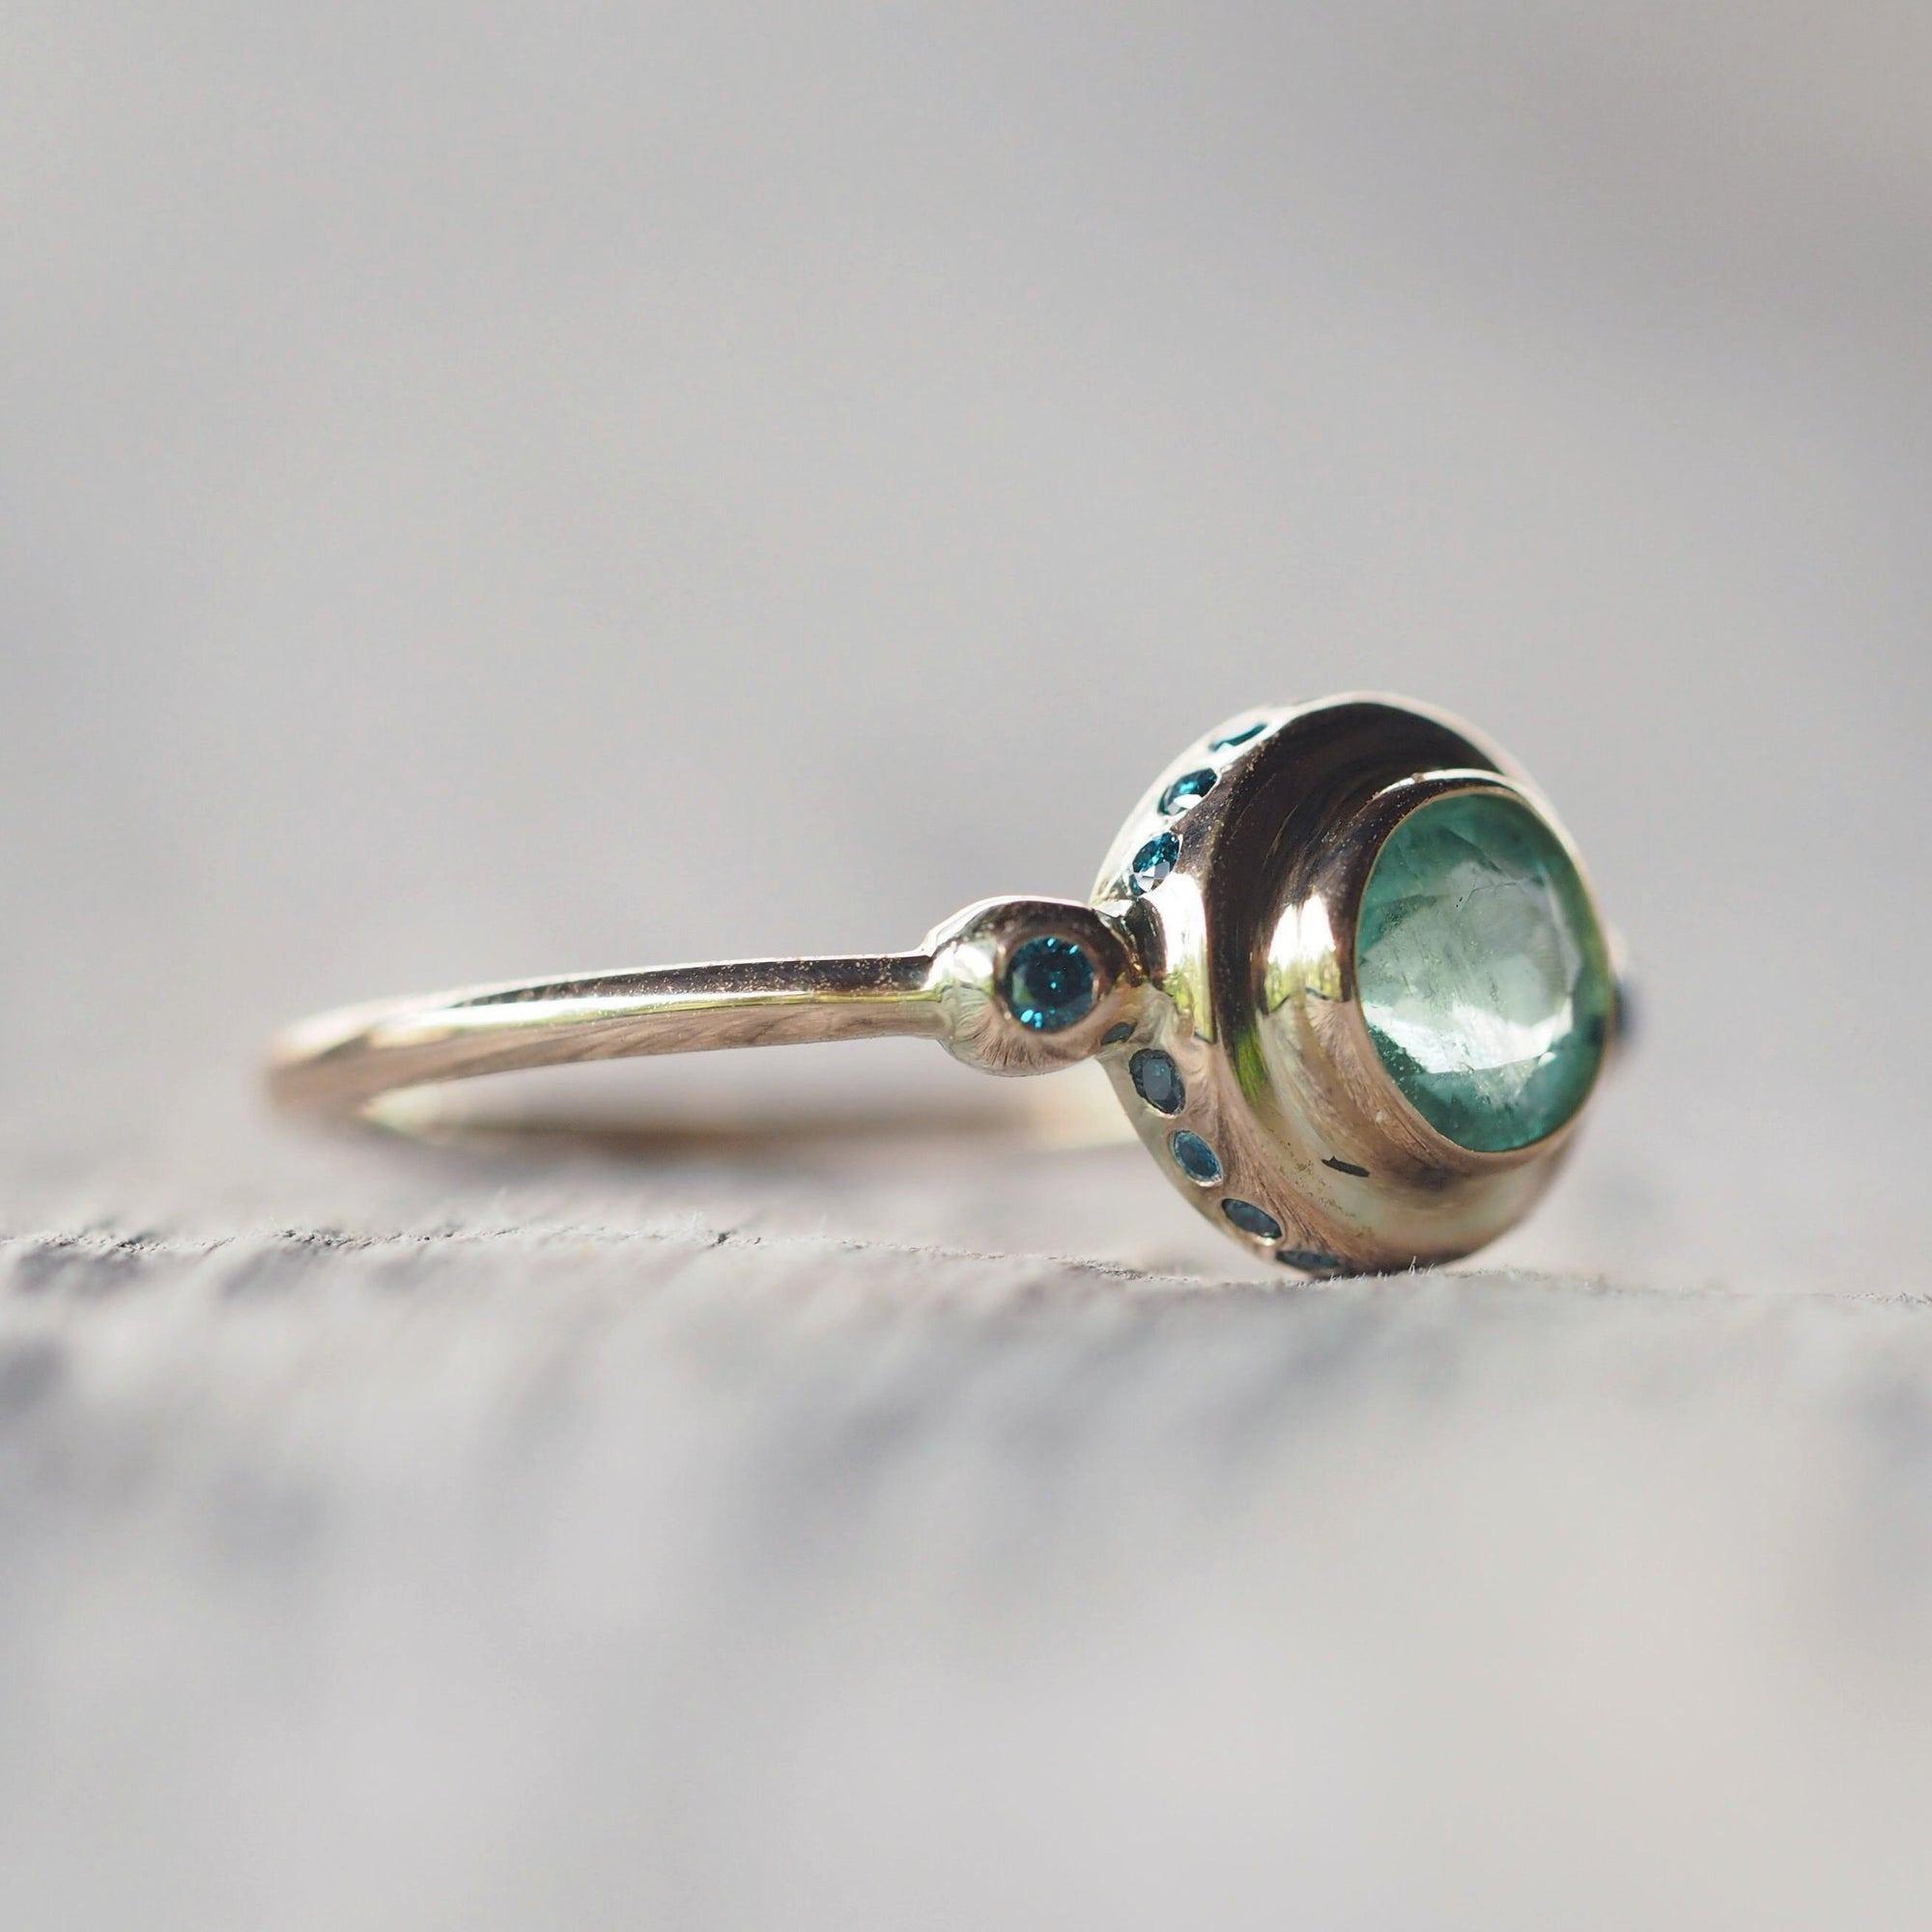 Emerald and Color Change Garnet Ring in Gold - Gardens of the Sun Jewelry